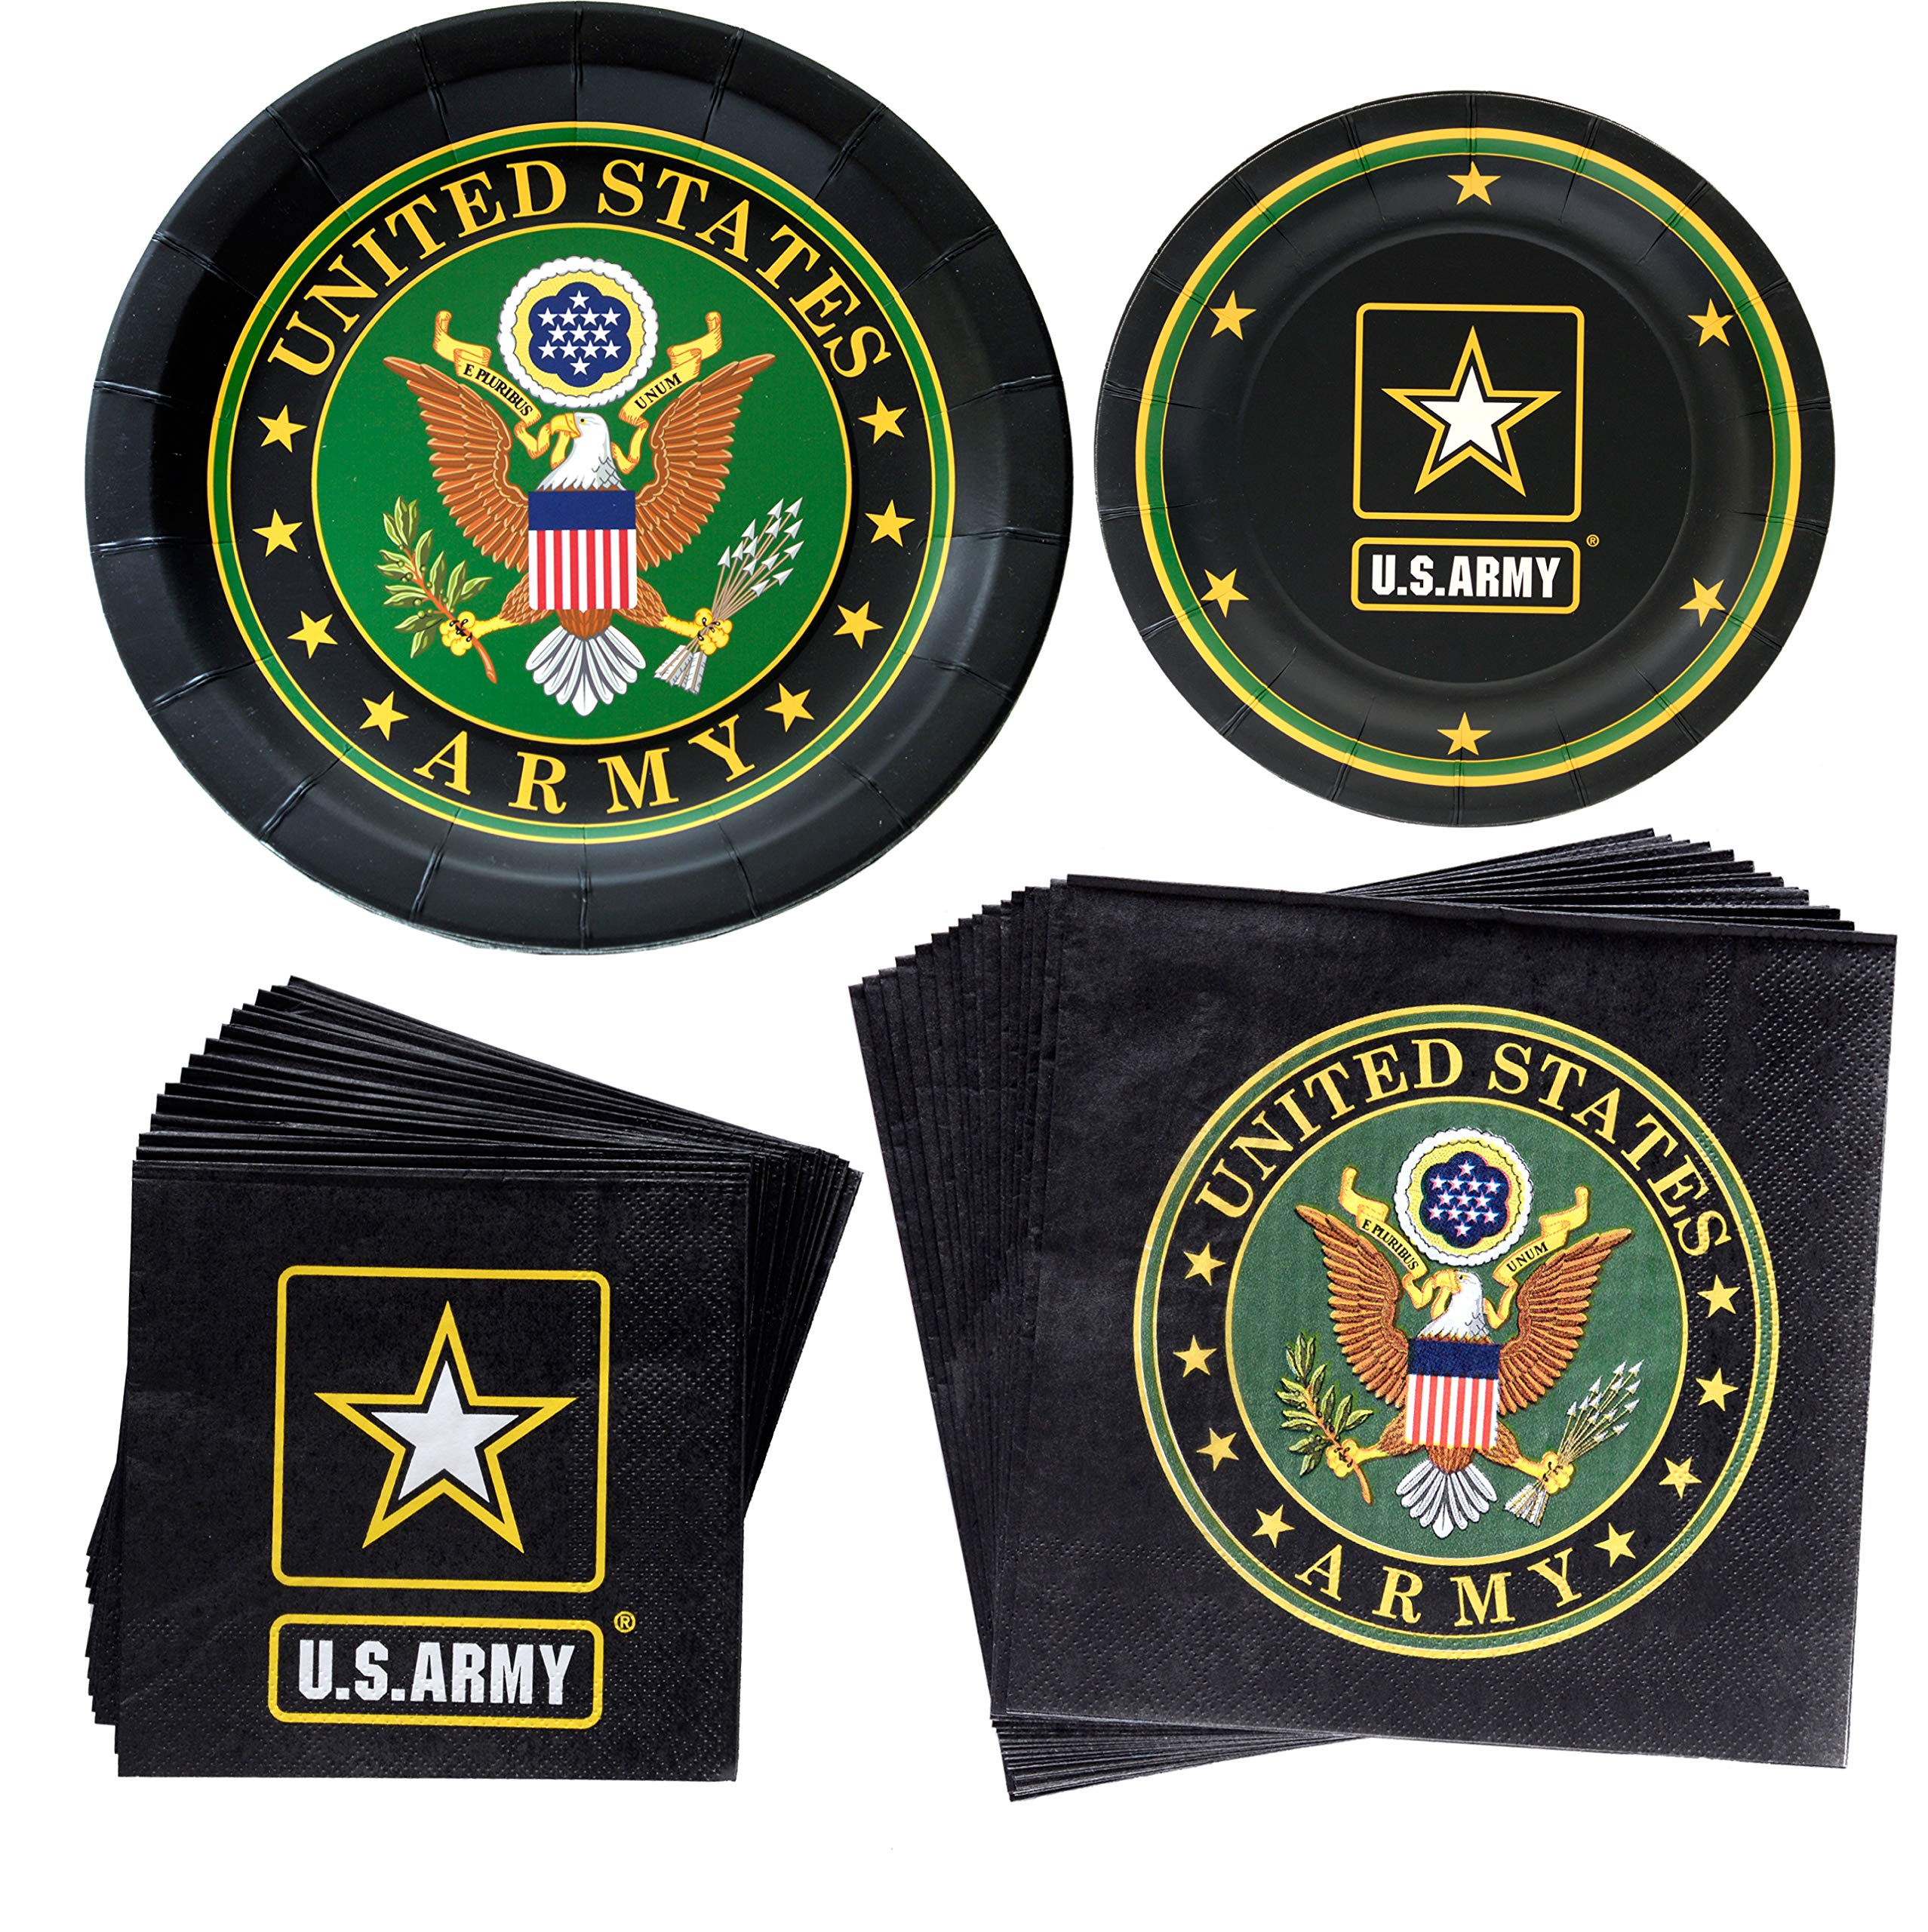 Havercamp US Army Party Bundle | Dinner & Dessert Plates, Luncheon & Beverage Napkins, Balloon | Great for Homecoming Party, Military Inspired Event, American Hero Themed Occasion by Havercamp